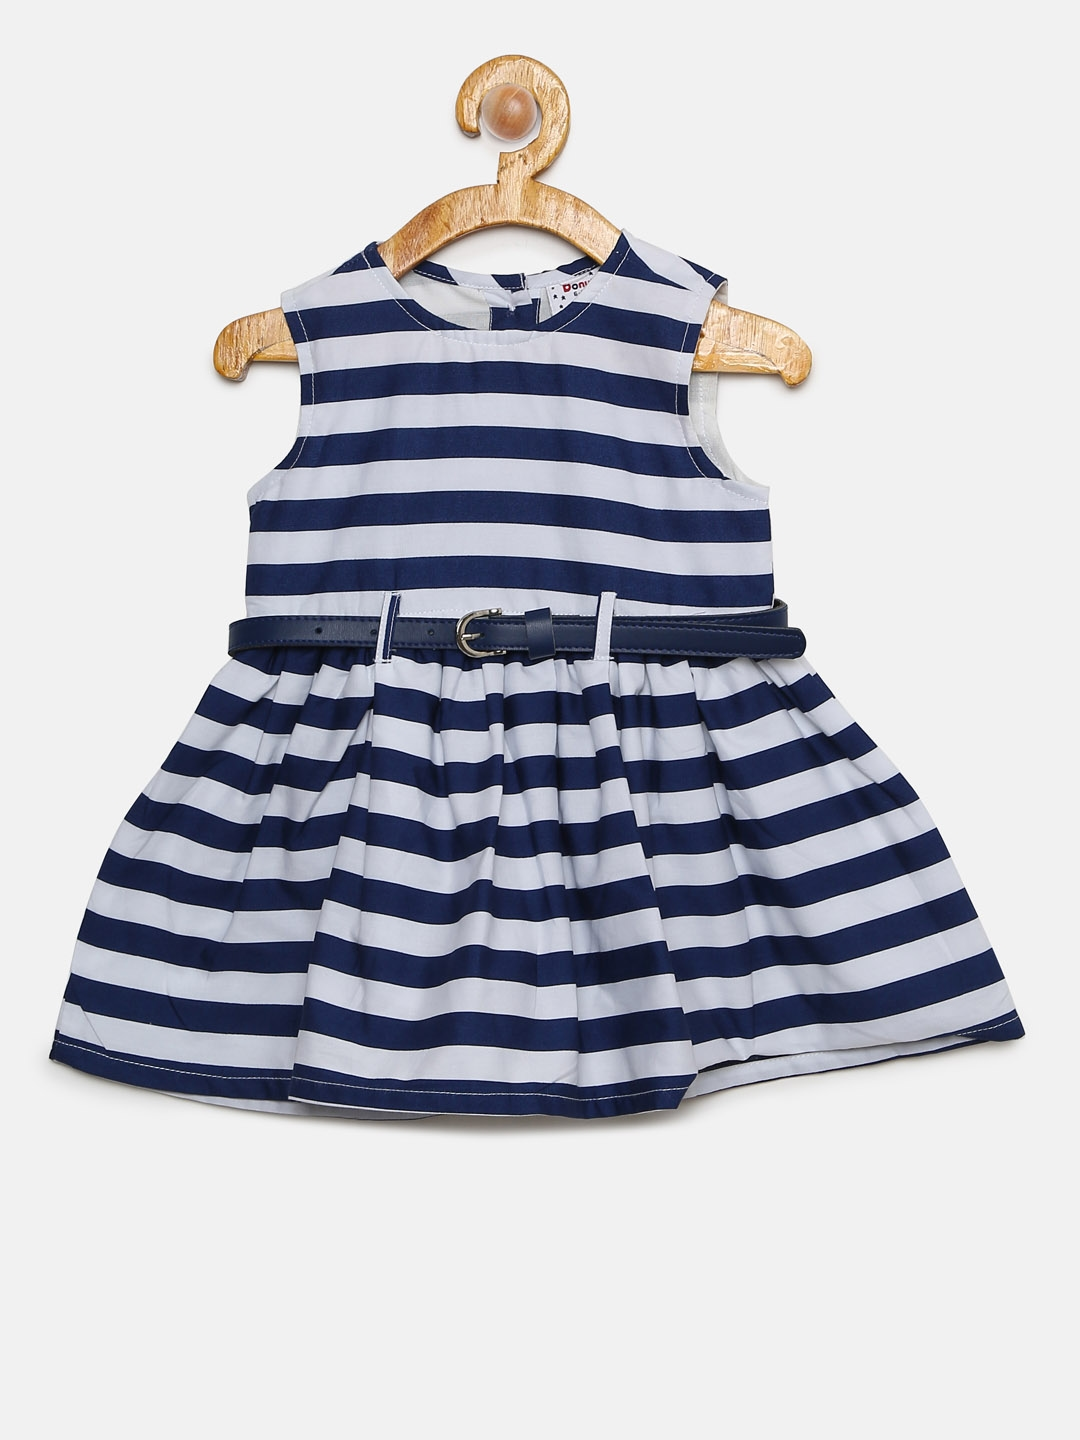 6f965ec32 Buy Donuts Girls Navy   White Striped Fit And Flare Dress - Dresses ...